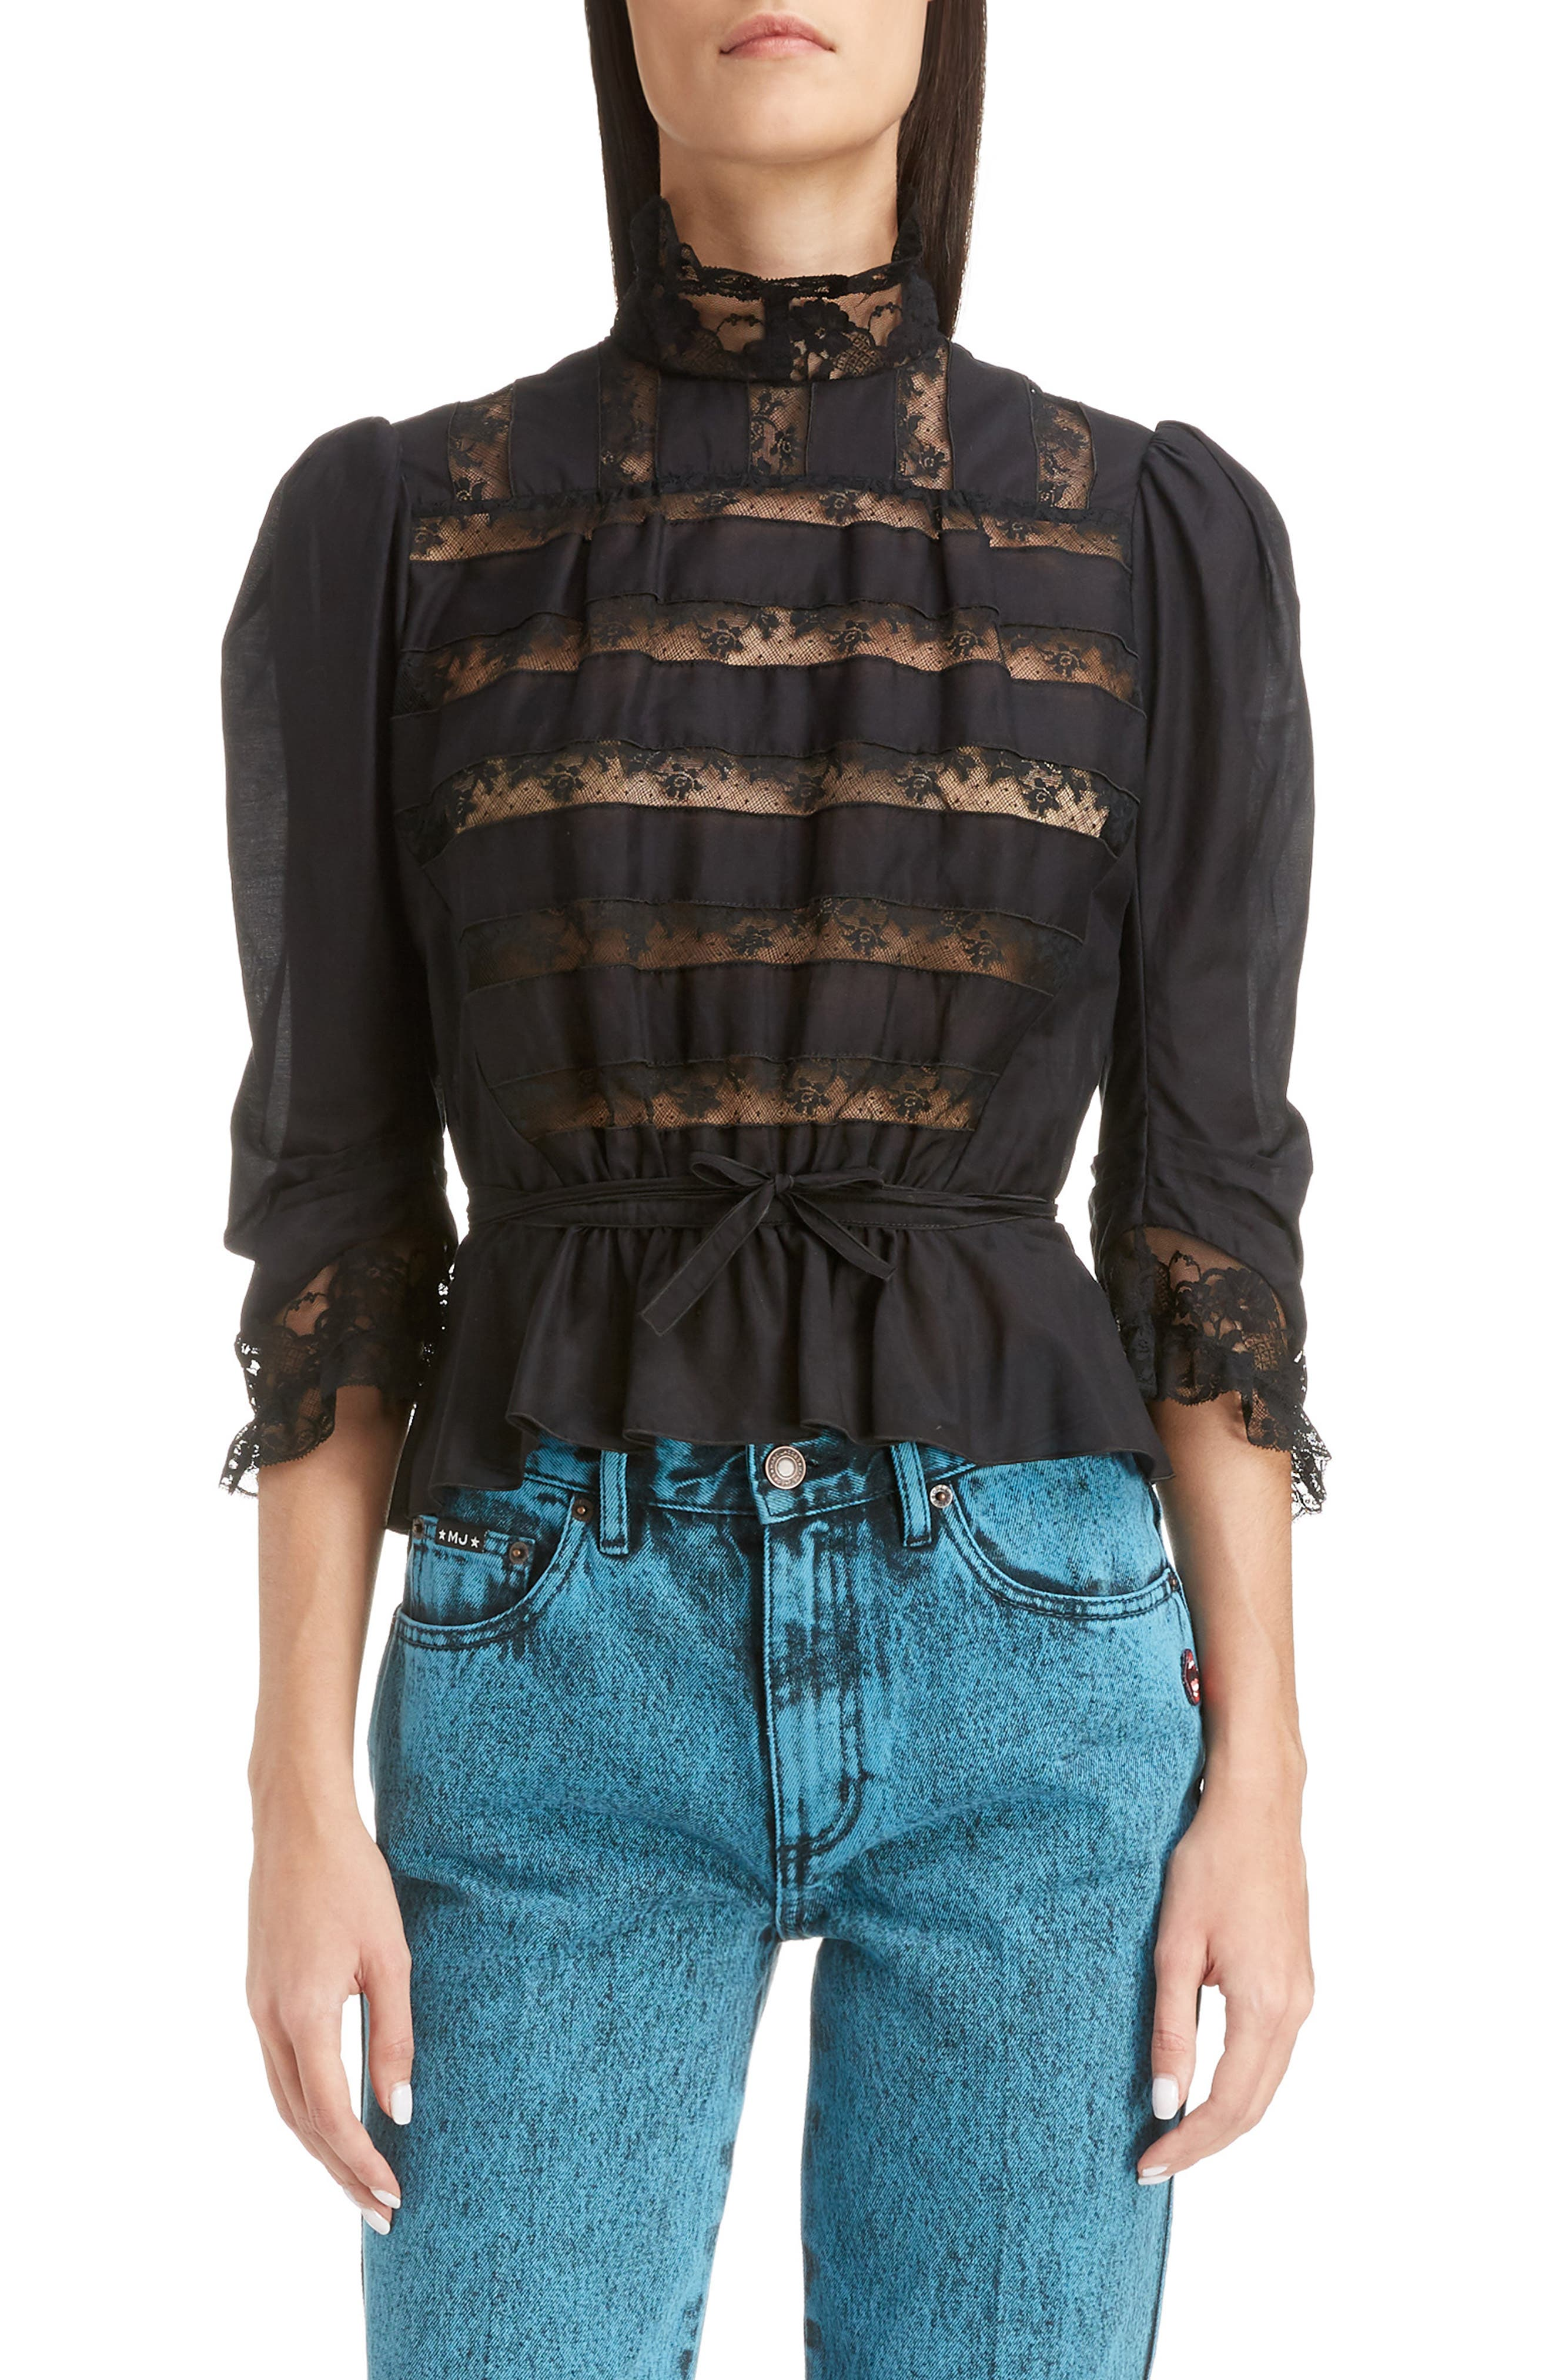 Victorian Blouses, Tops, Shirts, Sweaters Womens Marc Jacobs The Victorian Blouse $375.00 AT vintagedancer.com